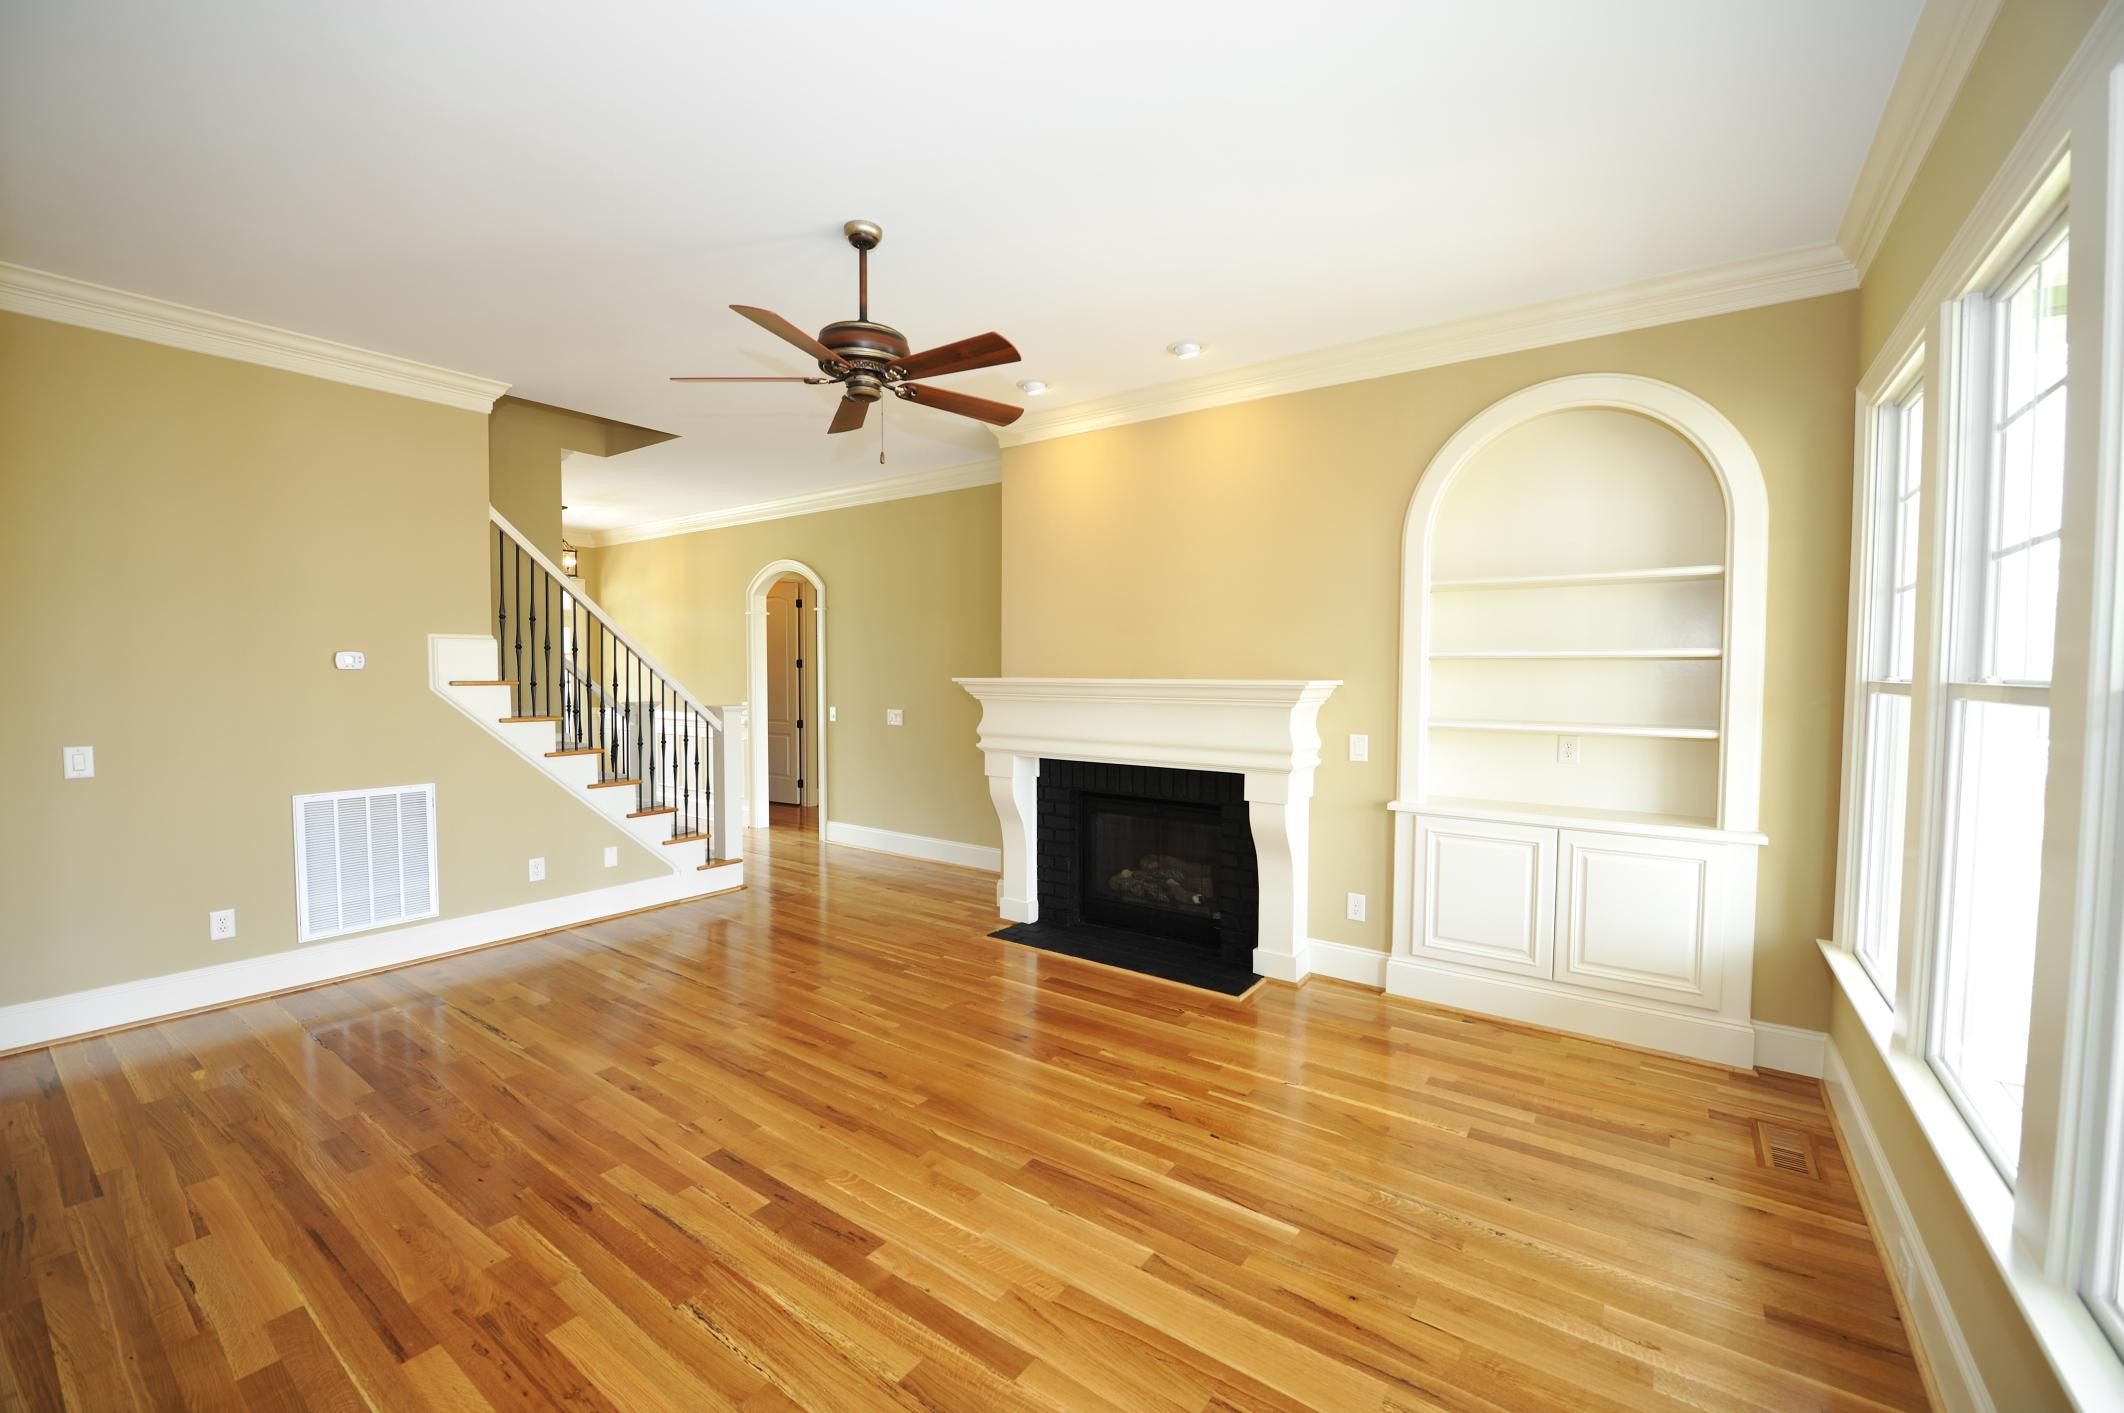 1 1 2 inch maple hardwood flooring of solid and engineered wood flooring pertaining to 157328869 56a4a2ac5f9b58b7d0d7ef49